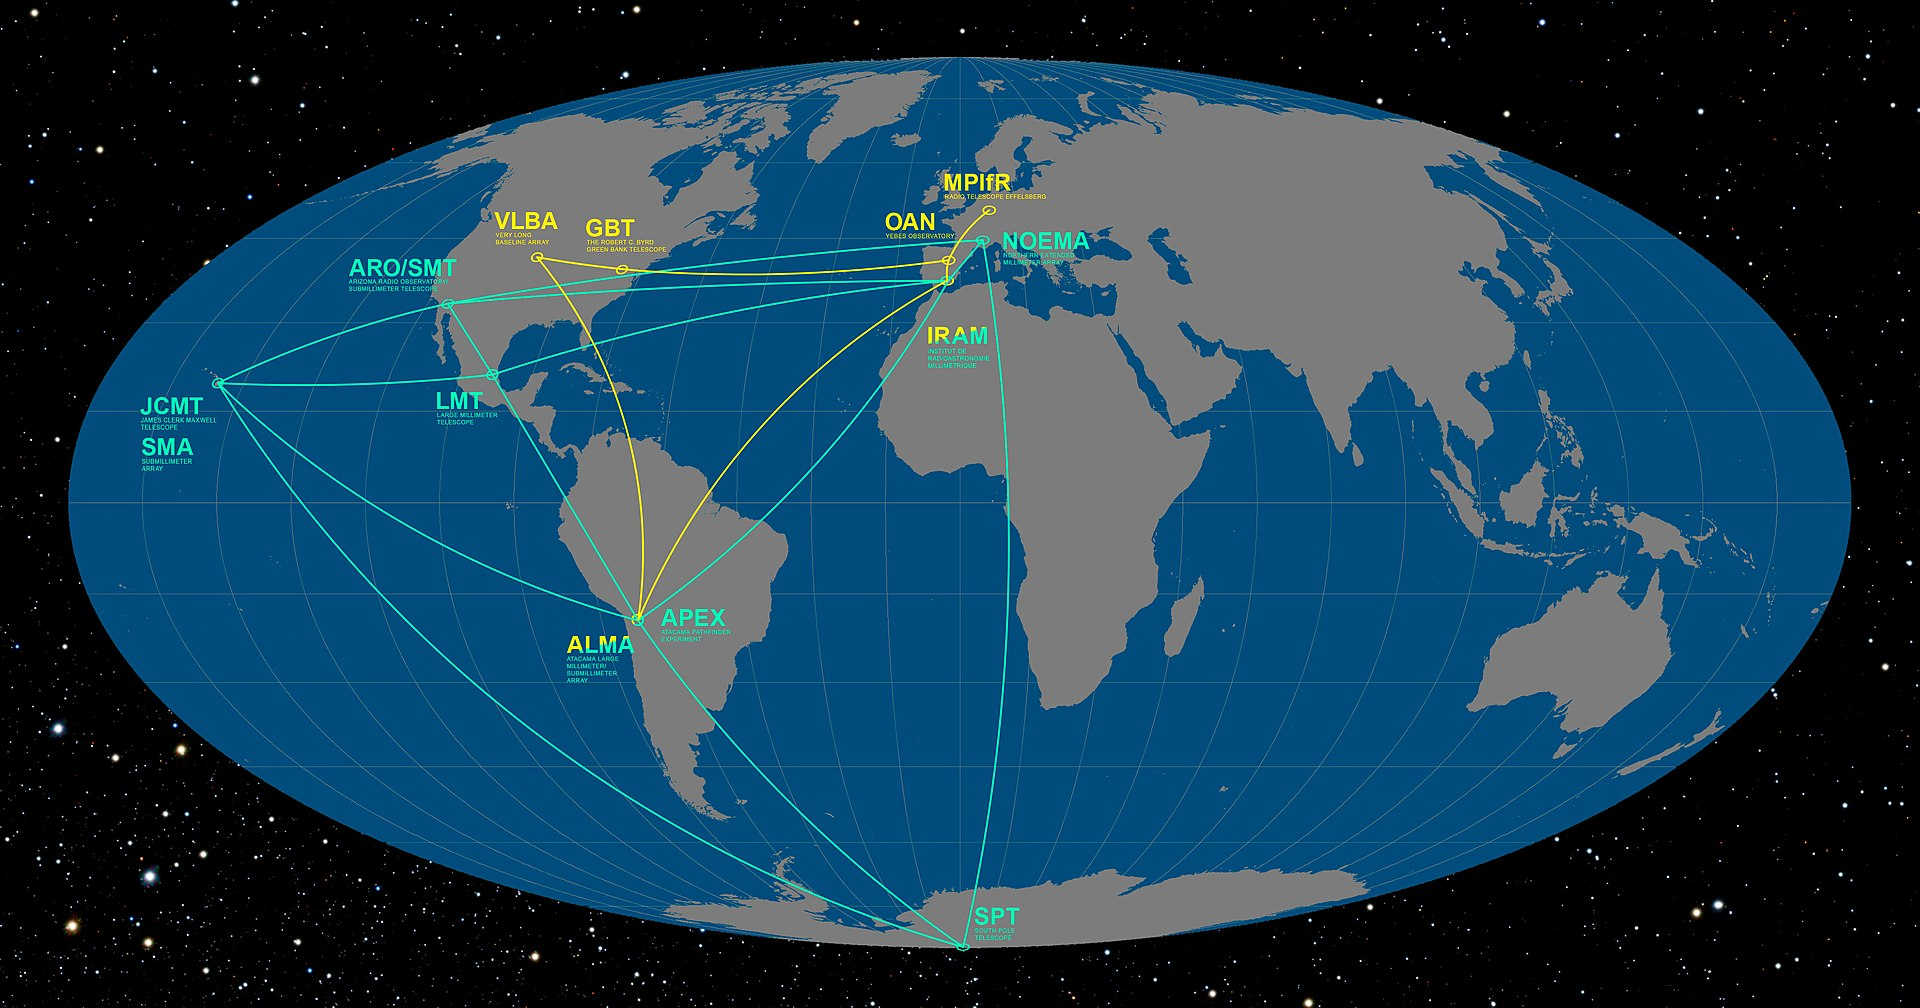 flat image of the earth and geolocations of participants of the Event Horizon Telescope